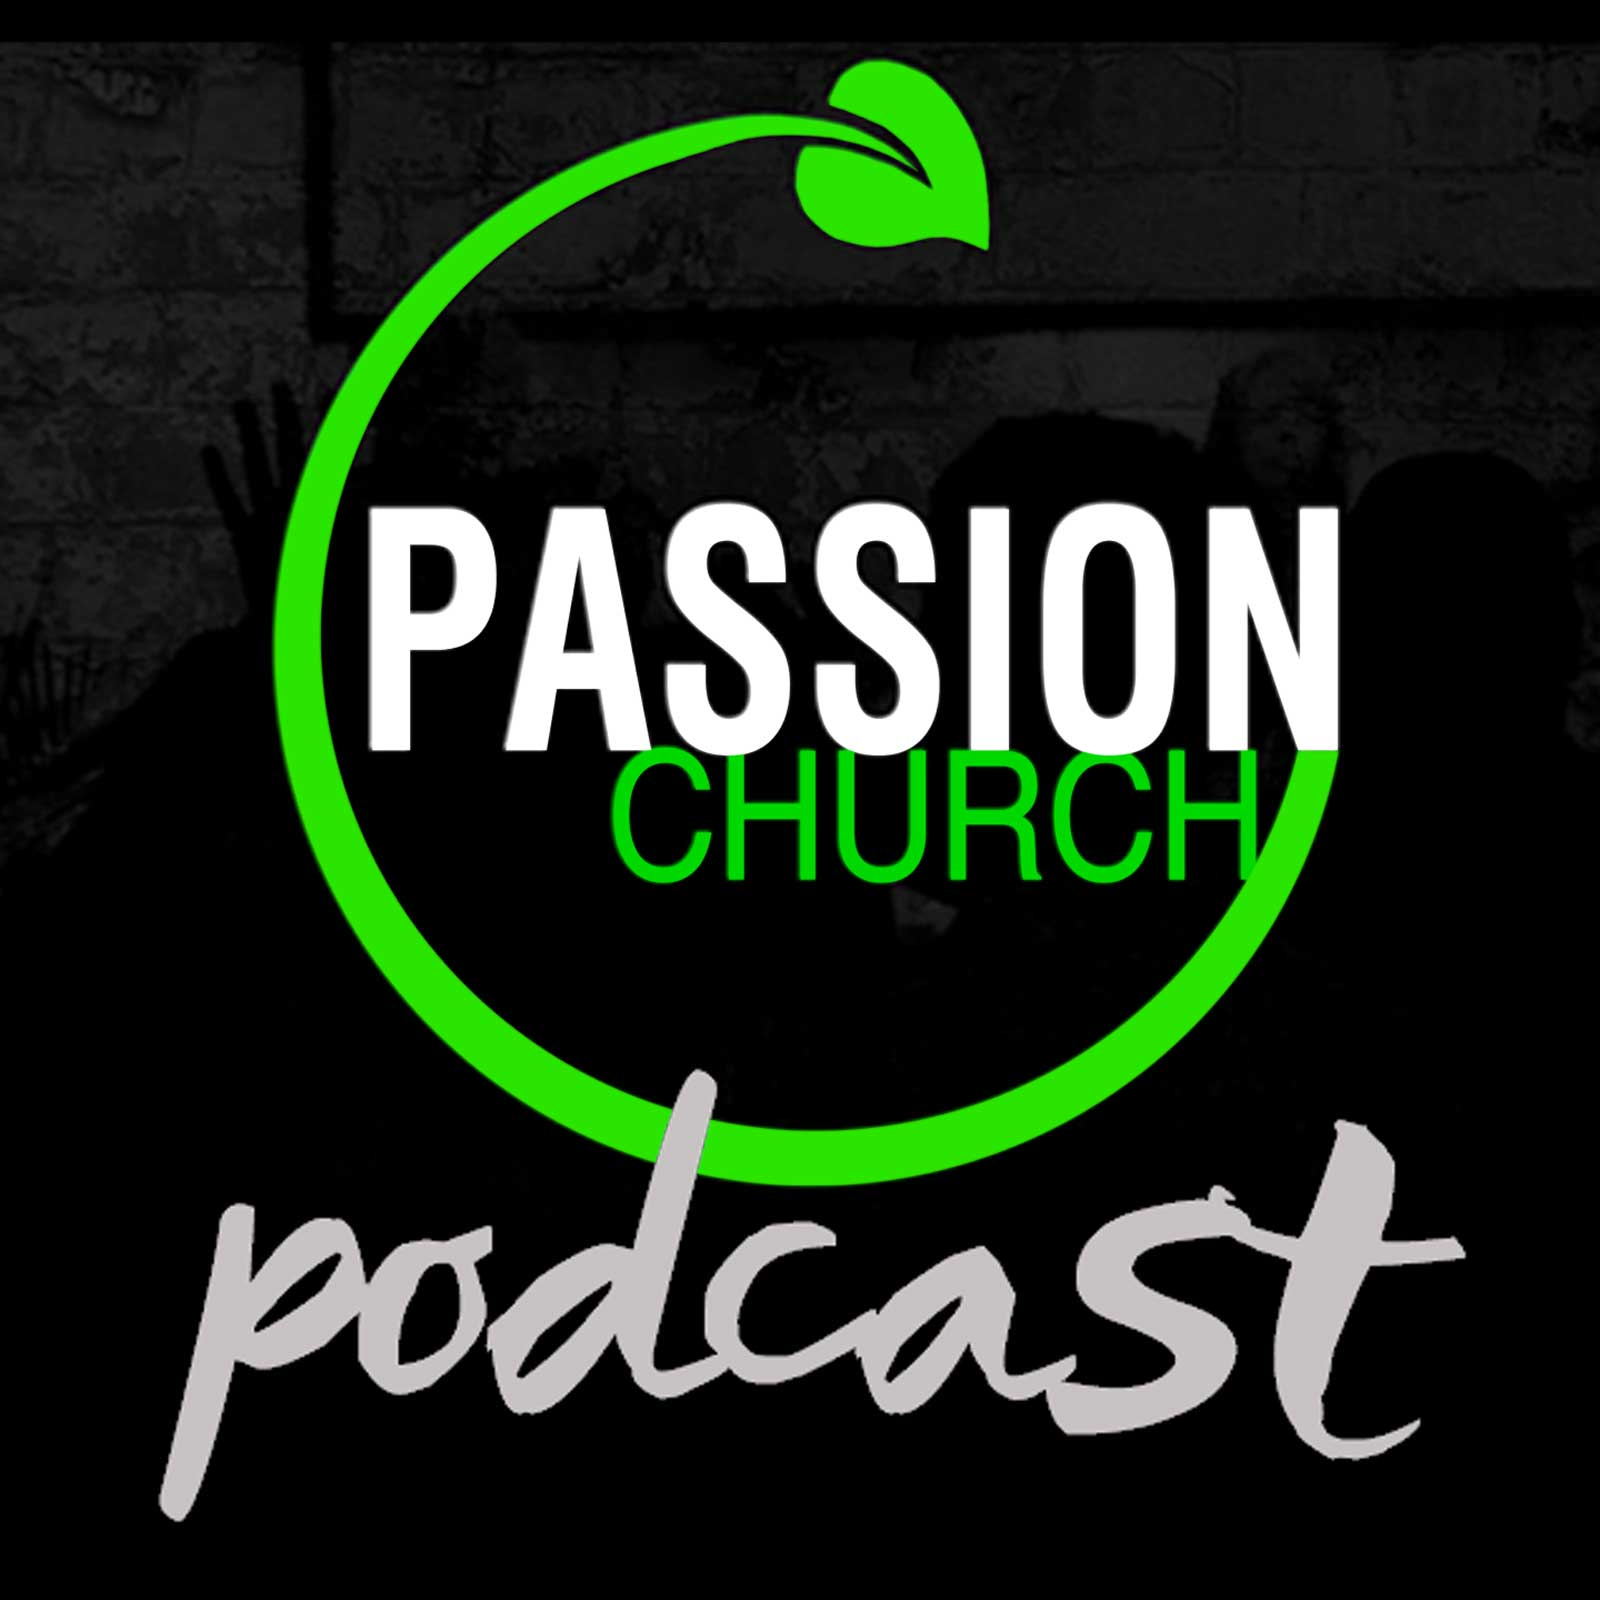 Passion Church Podcast NEW